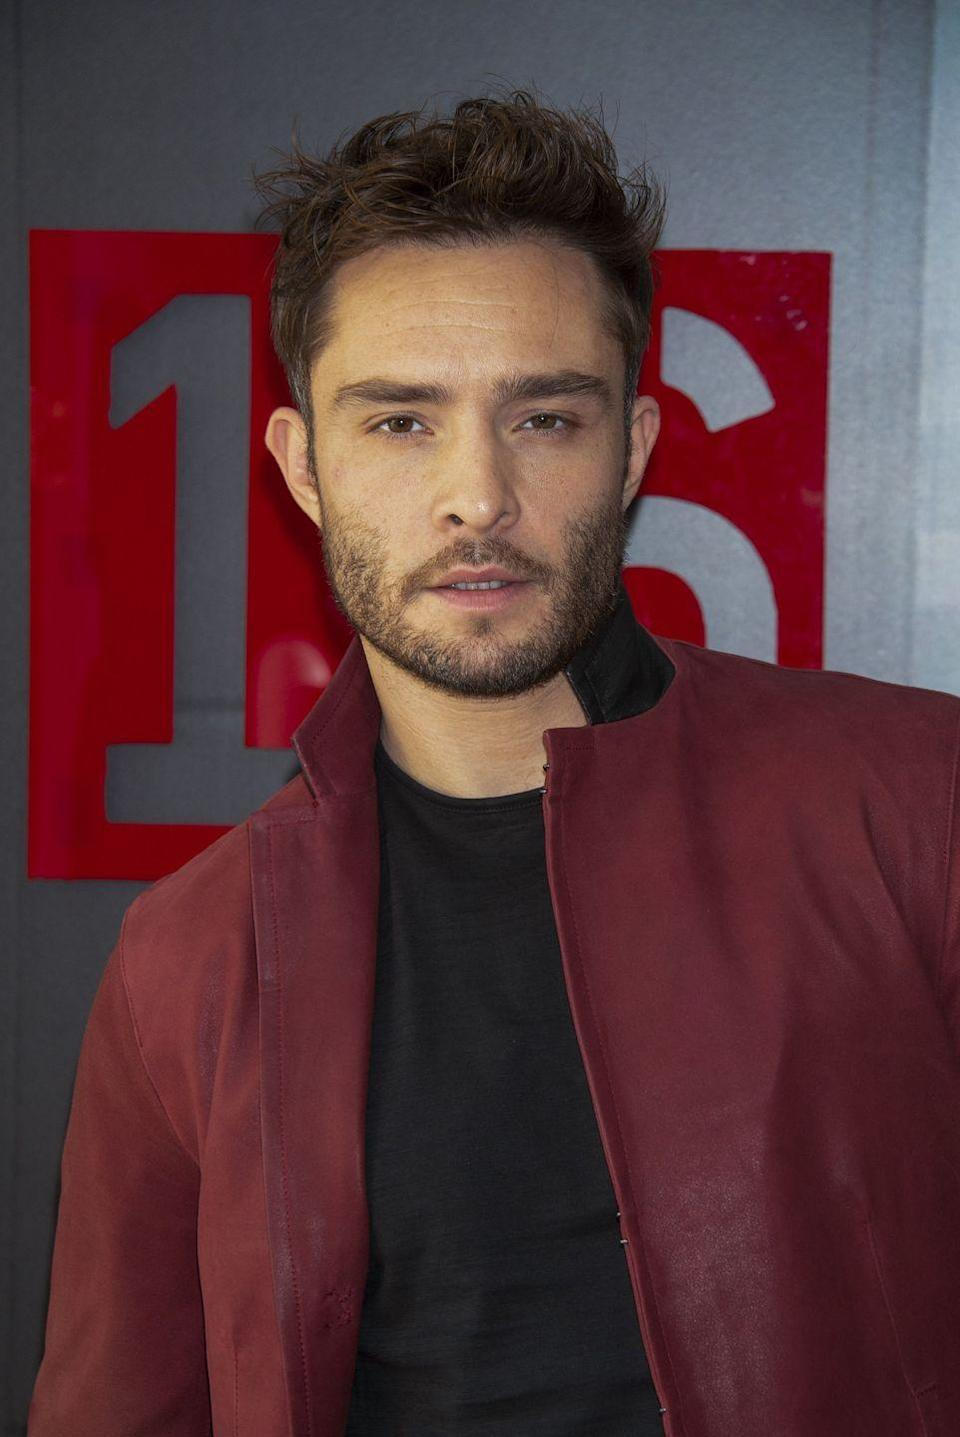 <p>Here's what's up with this leading man in 2021: He's focused on producing while still dabbling in the acting scene every now and then. He most recently starred in the movie <em>Me, You, Madness.</em> </p><p>He's also got a new GF, a model named Tamara Francesconi, and yeah, they're really freakin' cute.</p>